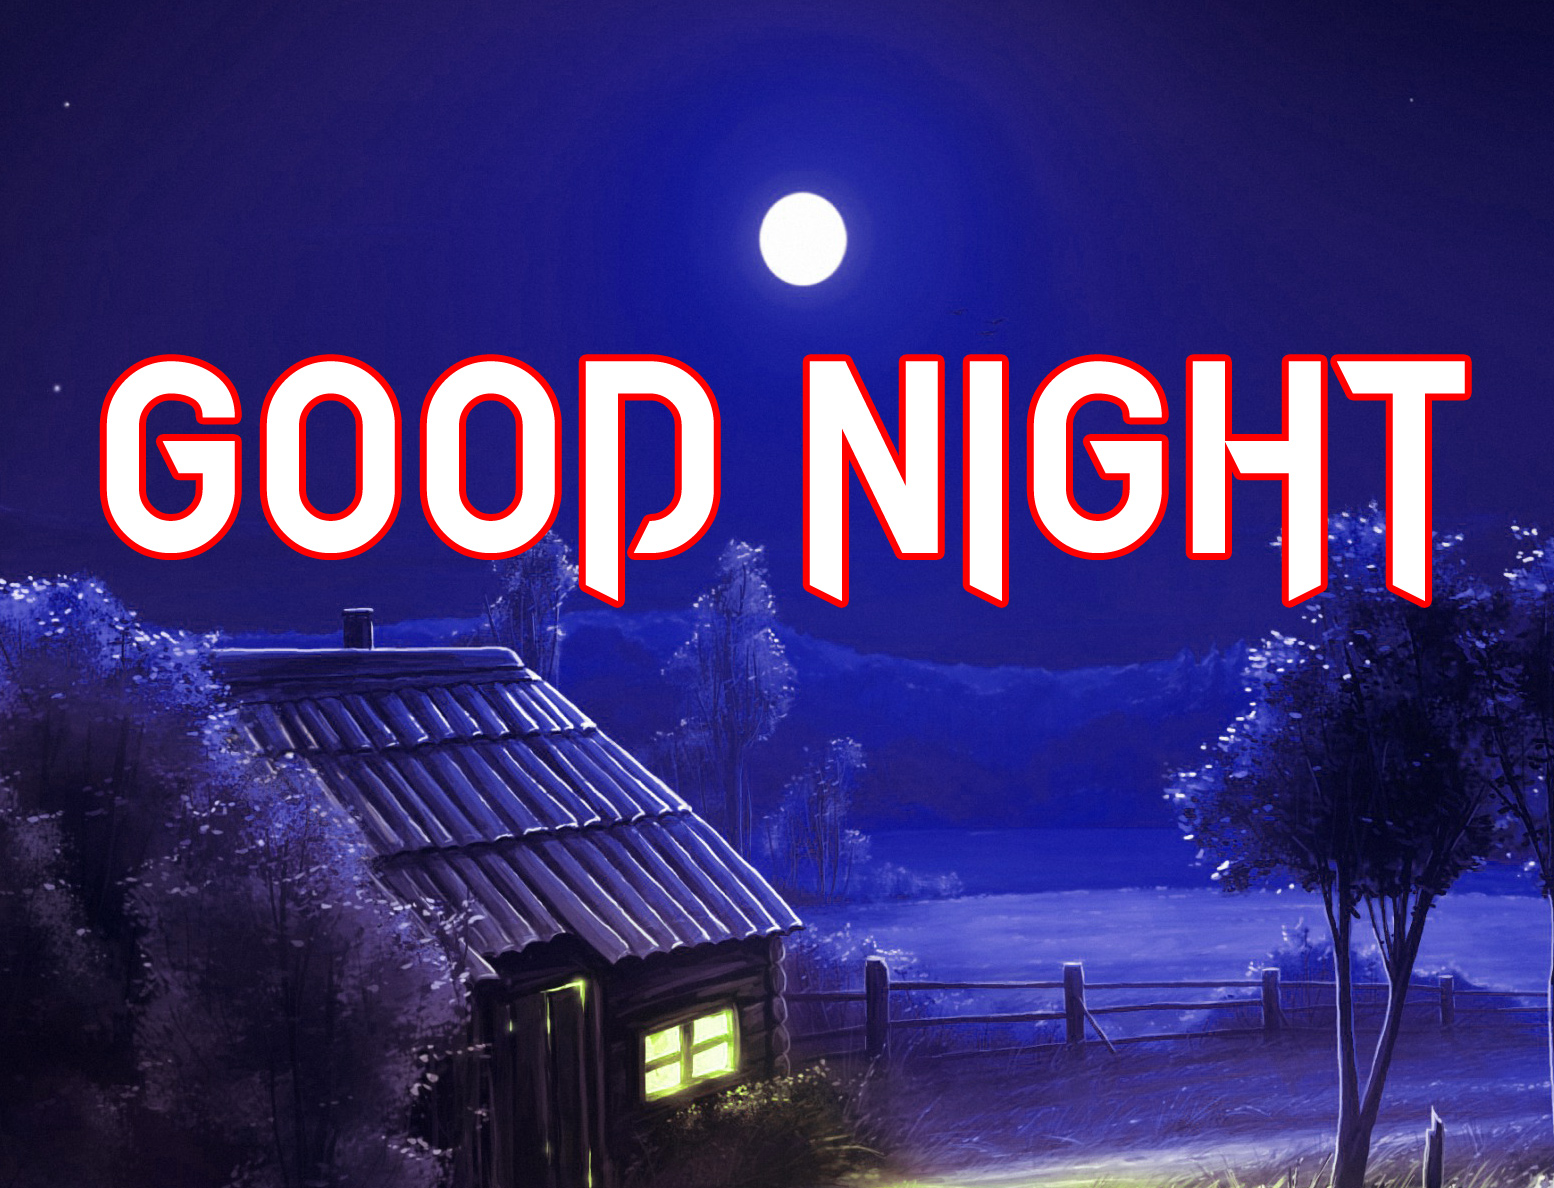 DOWNLOAD GOOD NIGHT IMAGES PICS PHOTO HD